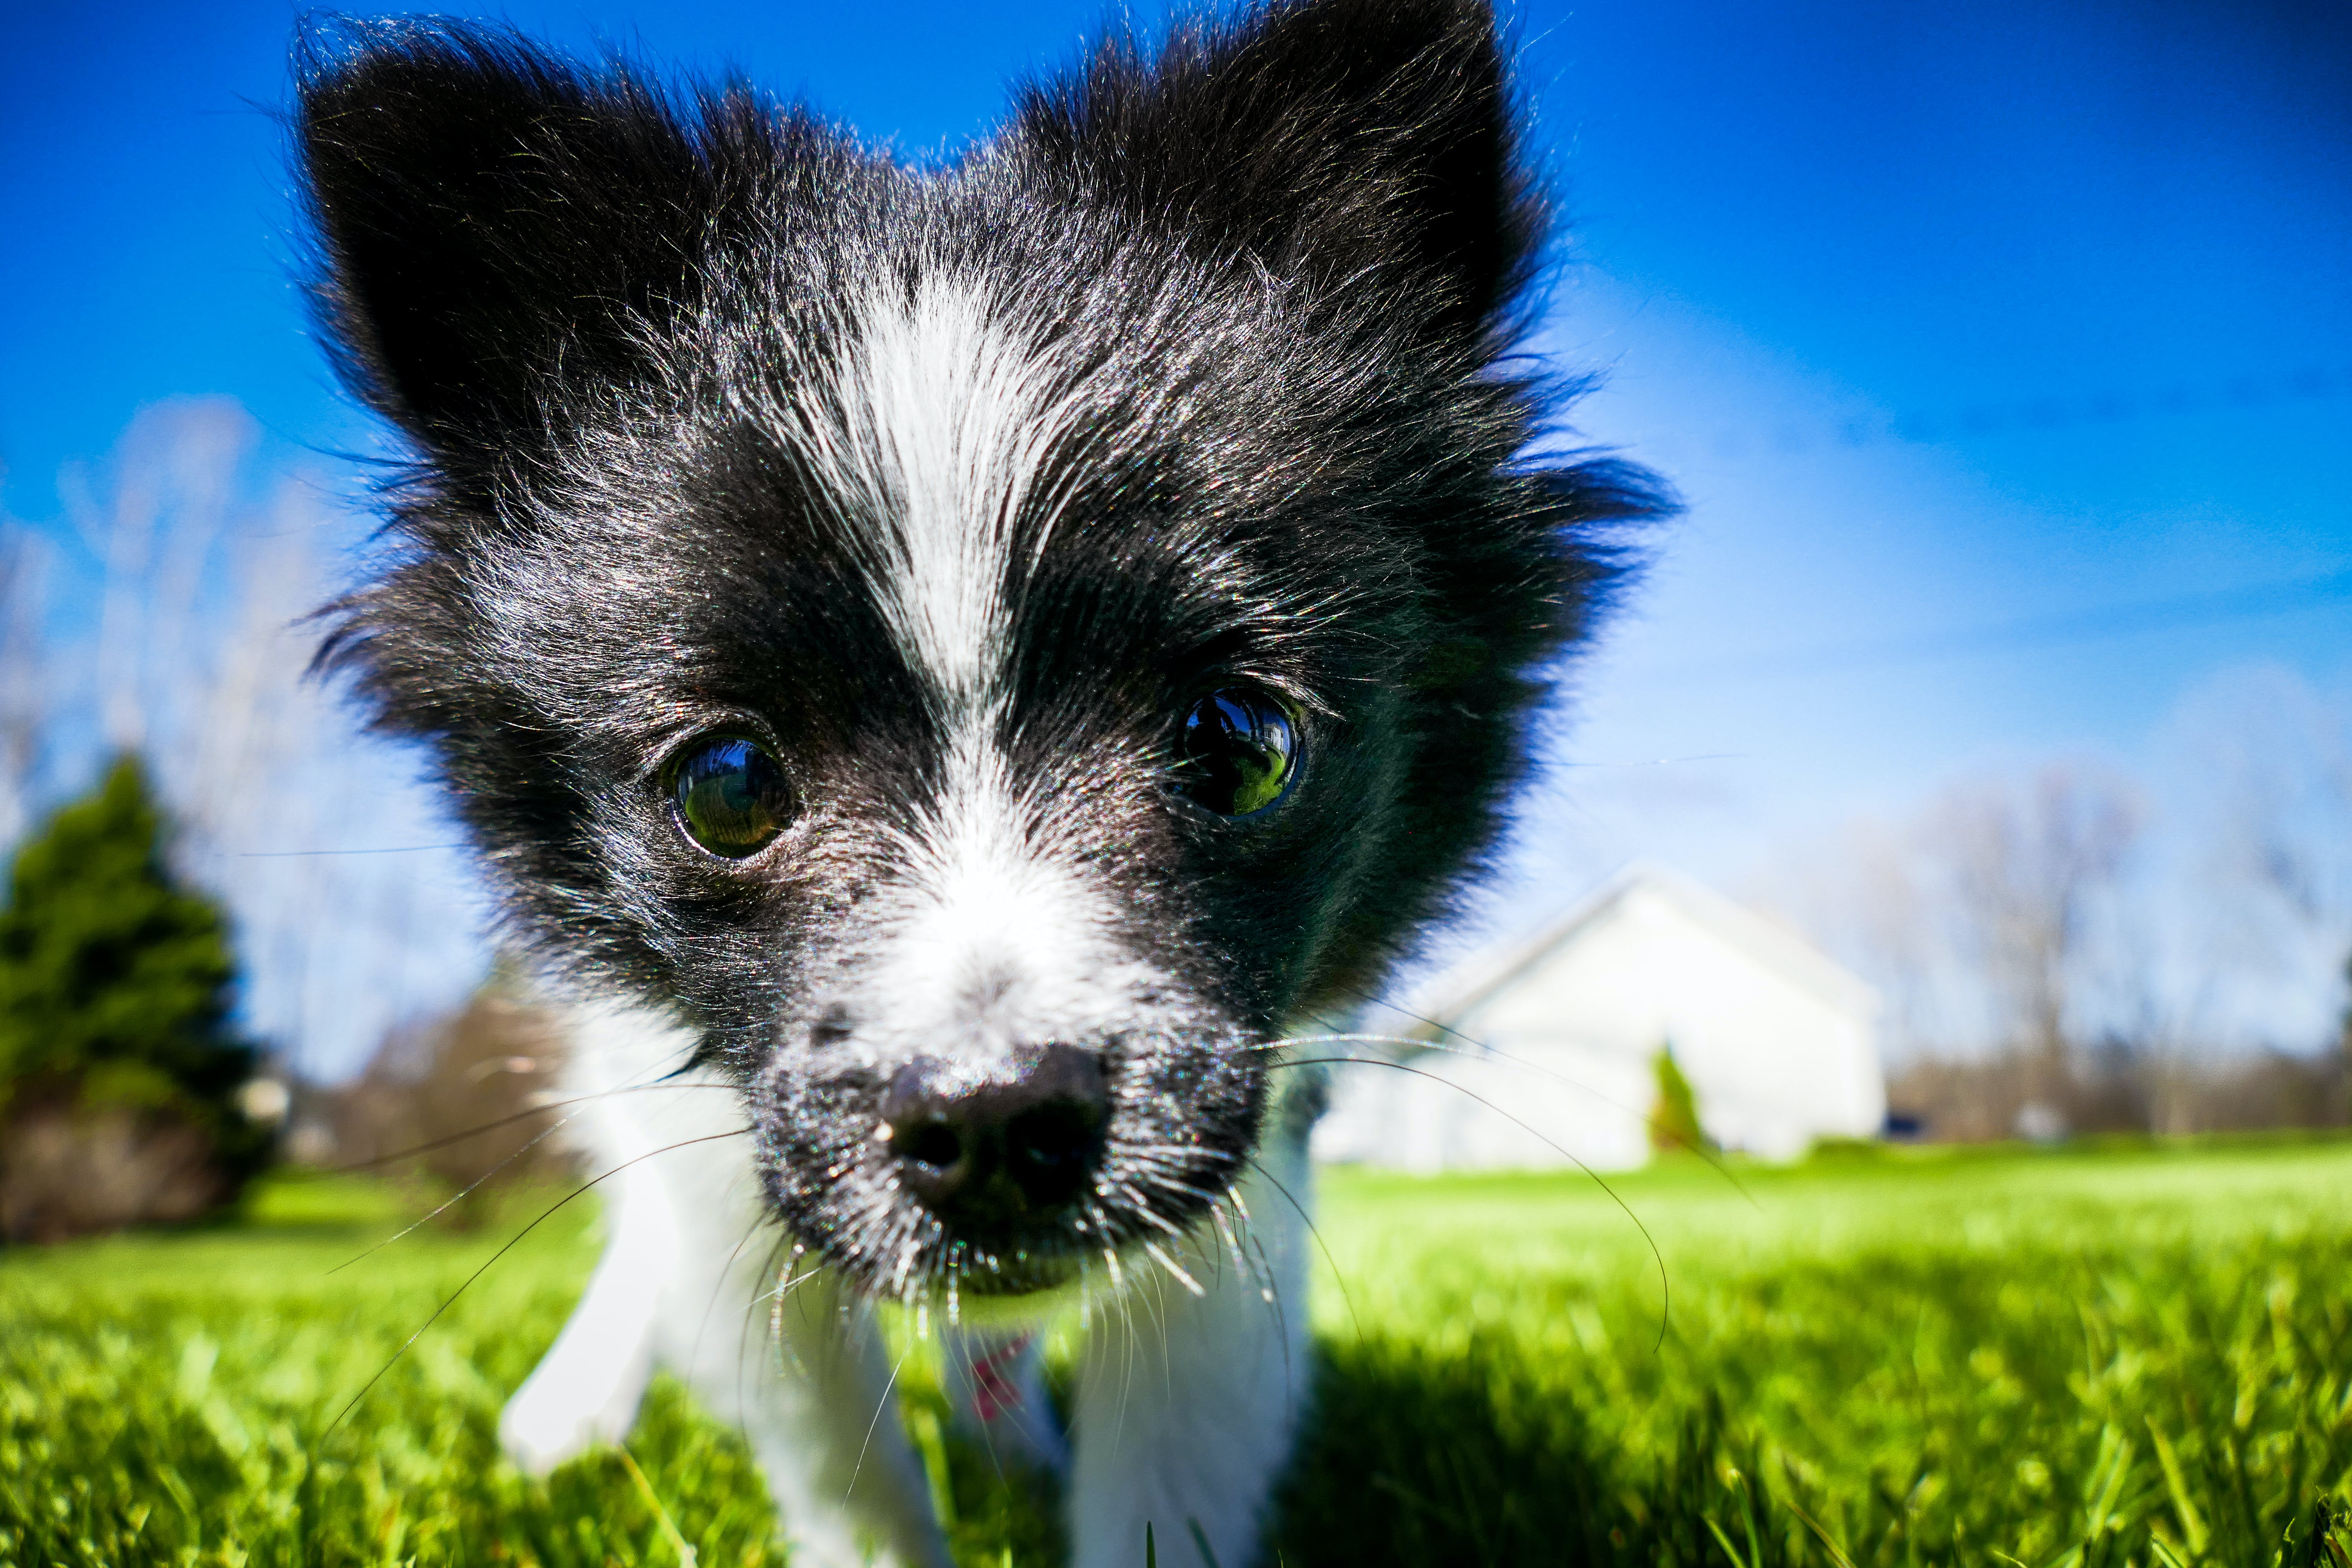 Closeup Photo of Short-coatedwhite and Black Puppy